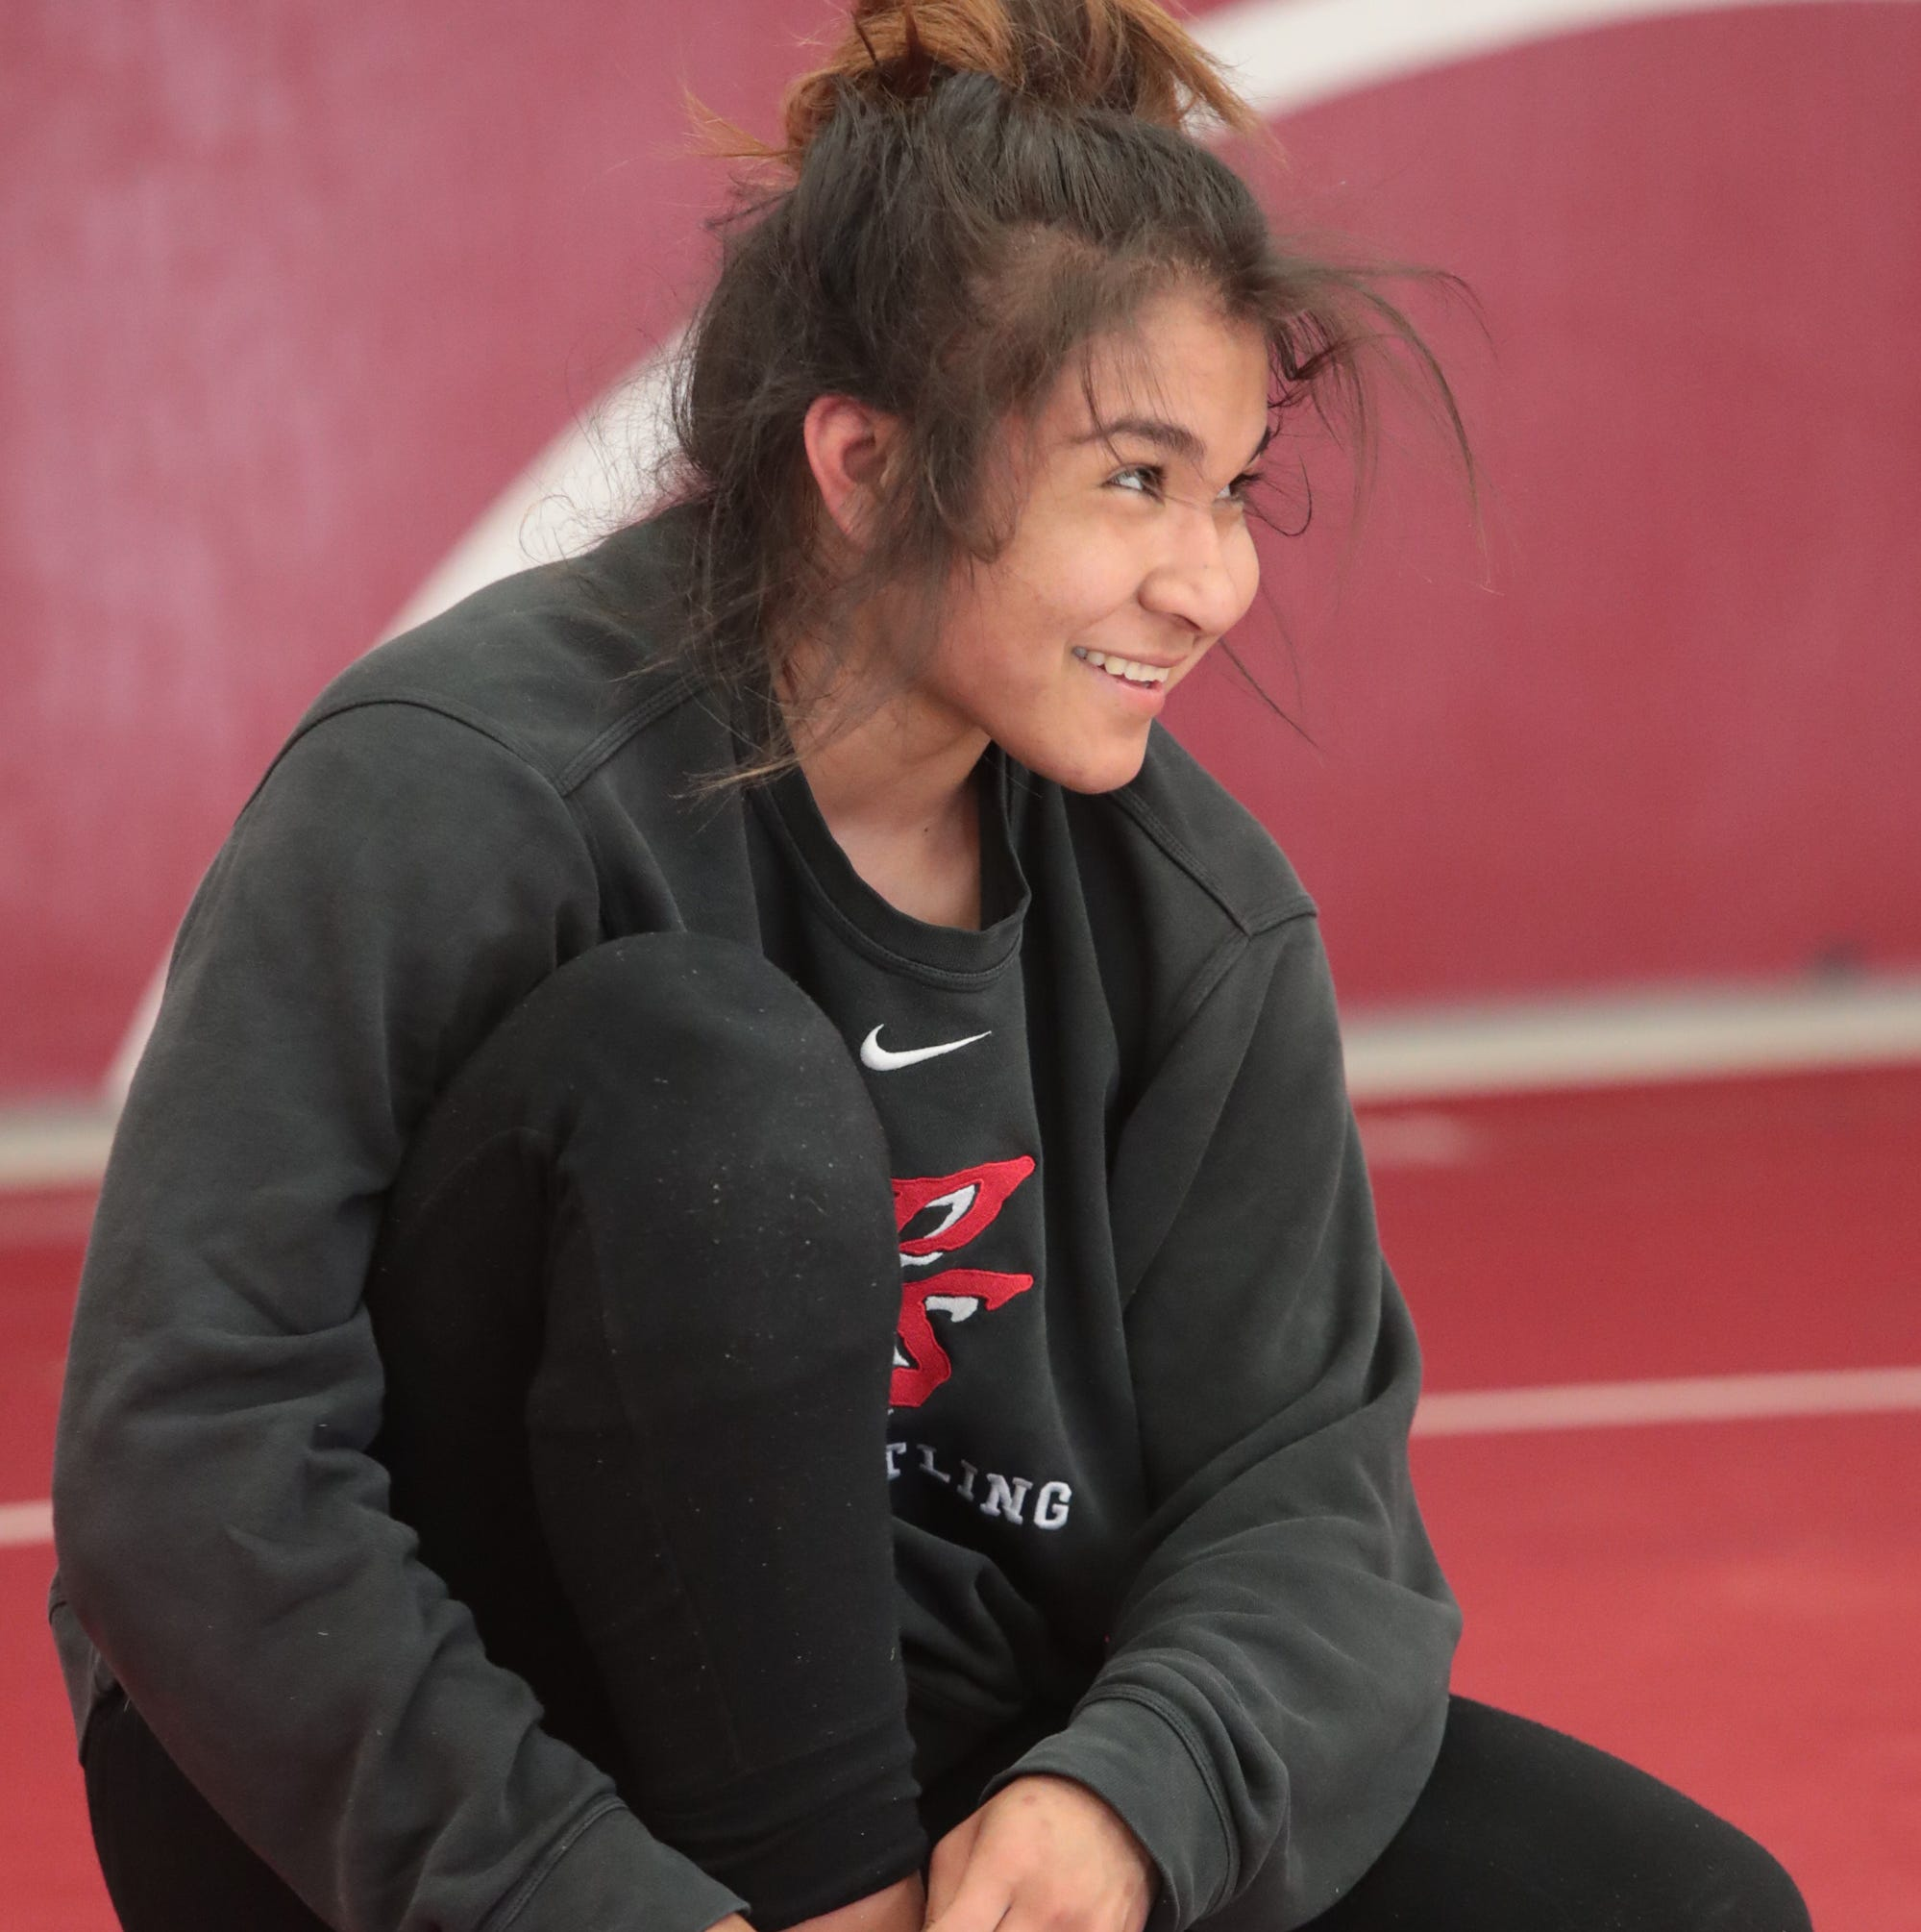 Palm Springs wrestler Cindy Zepeda takes third place at Nationals